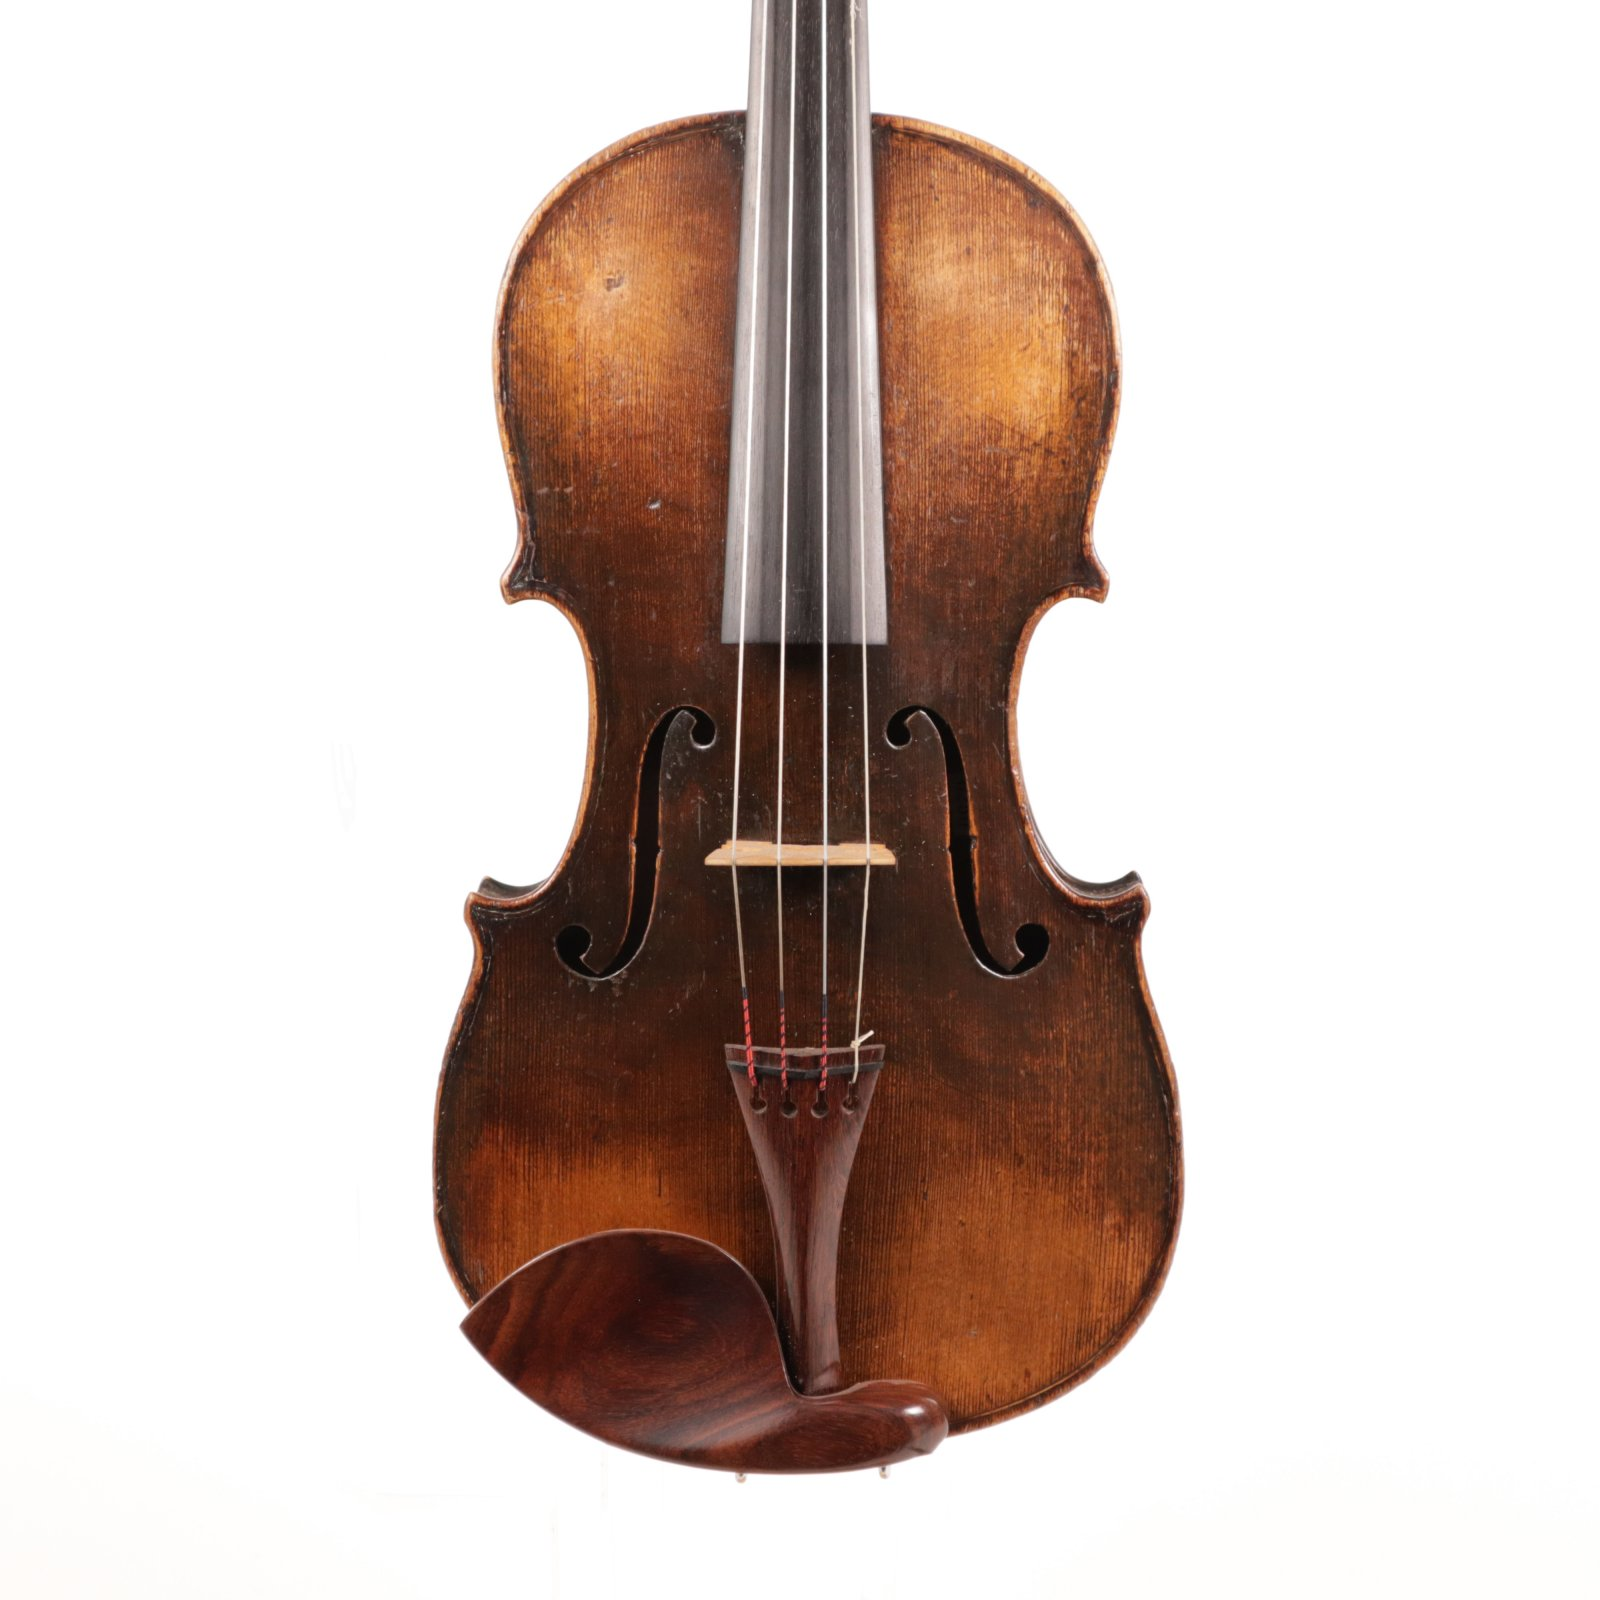 Joann Paul Schorn 1716 Violin